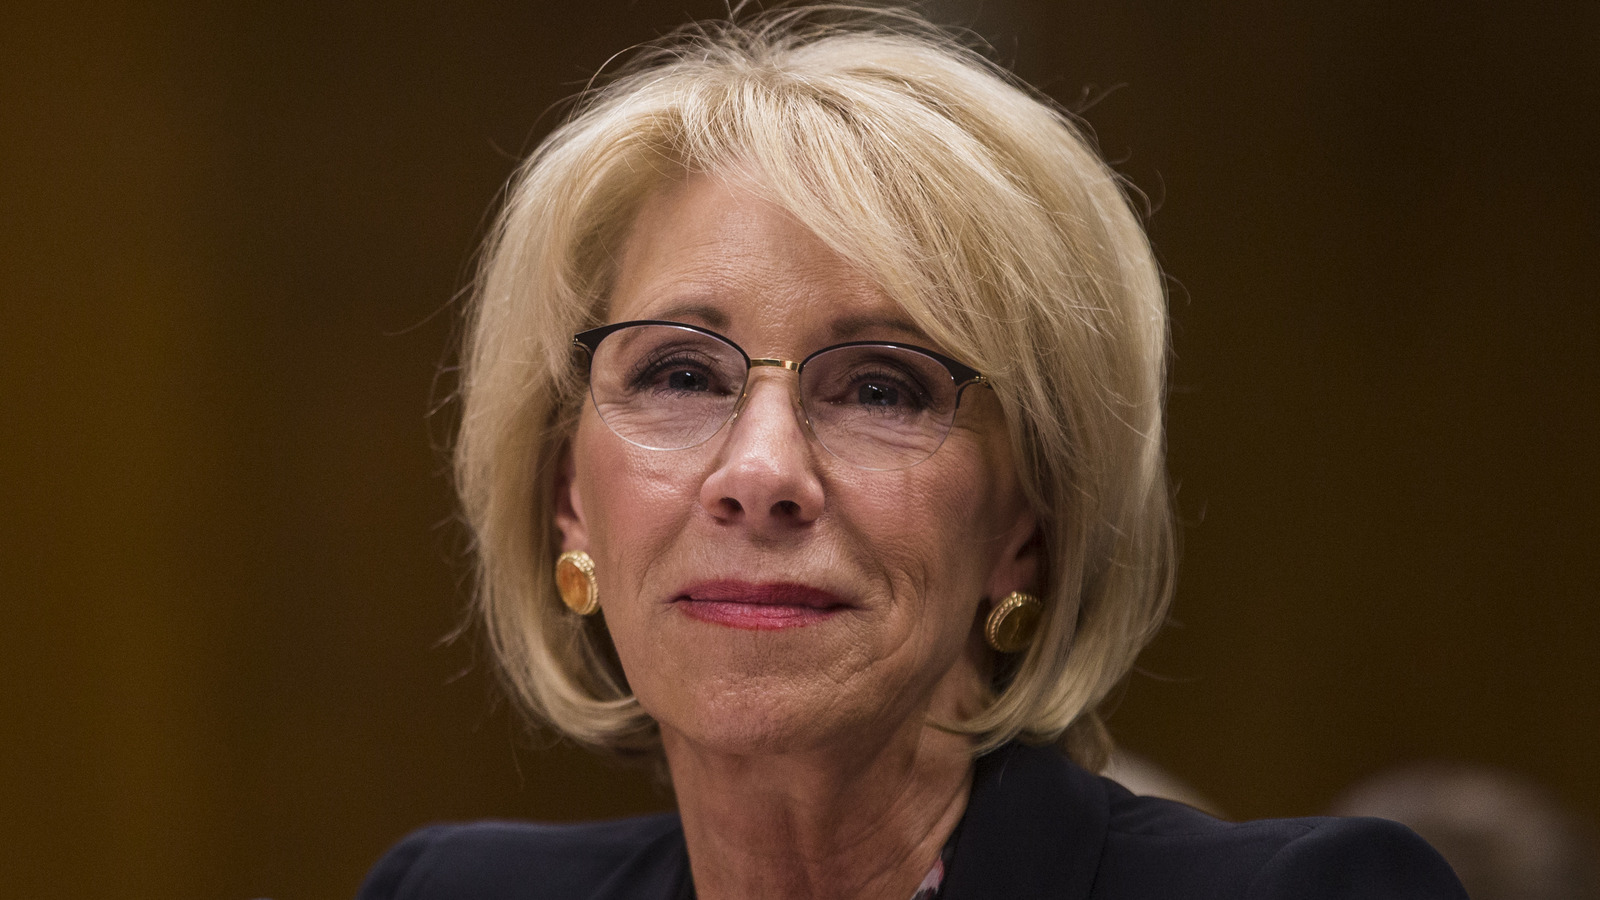 The Unsaid Truth about Betsy DeVos